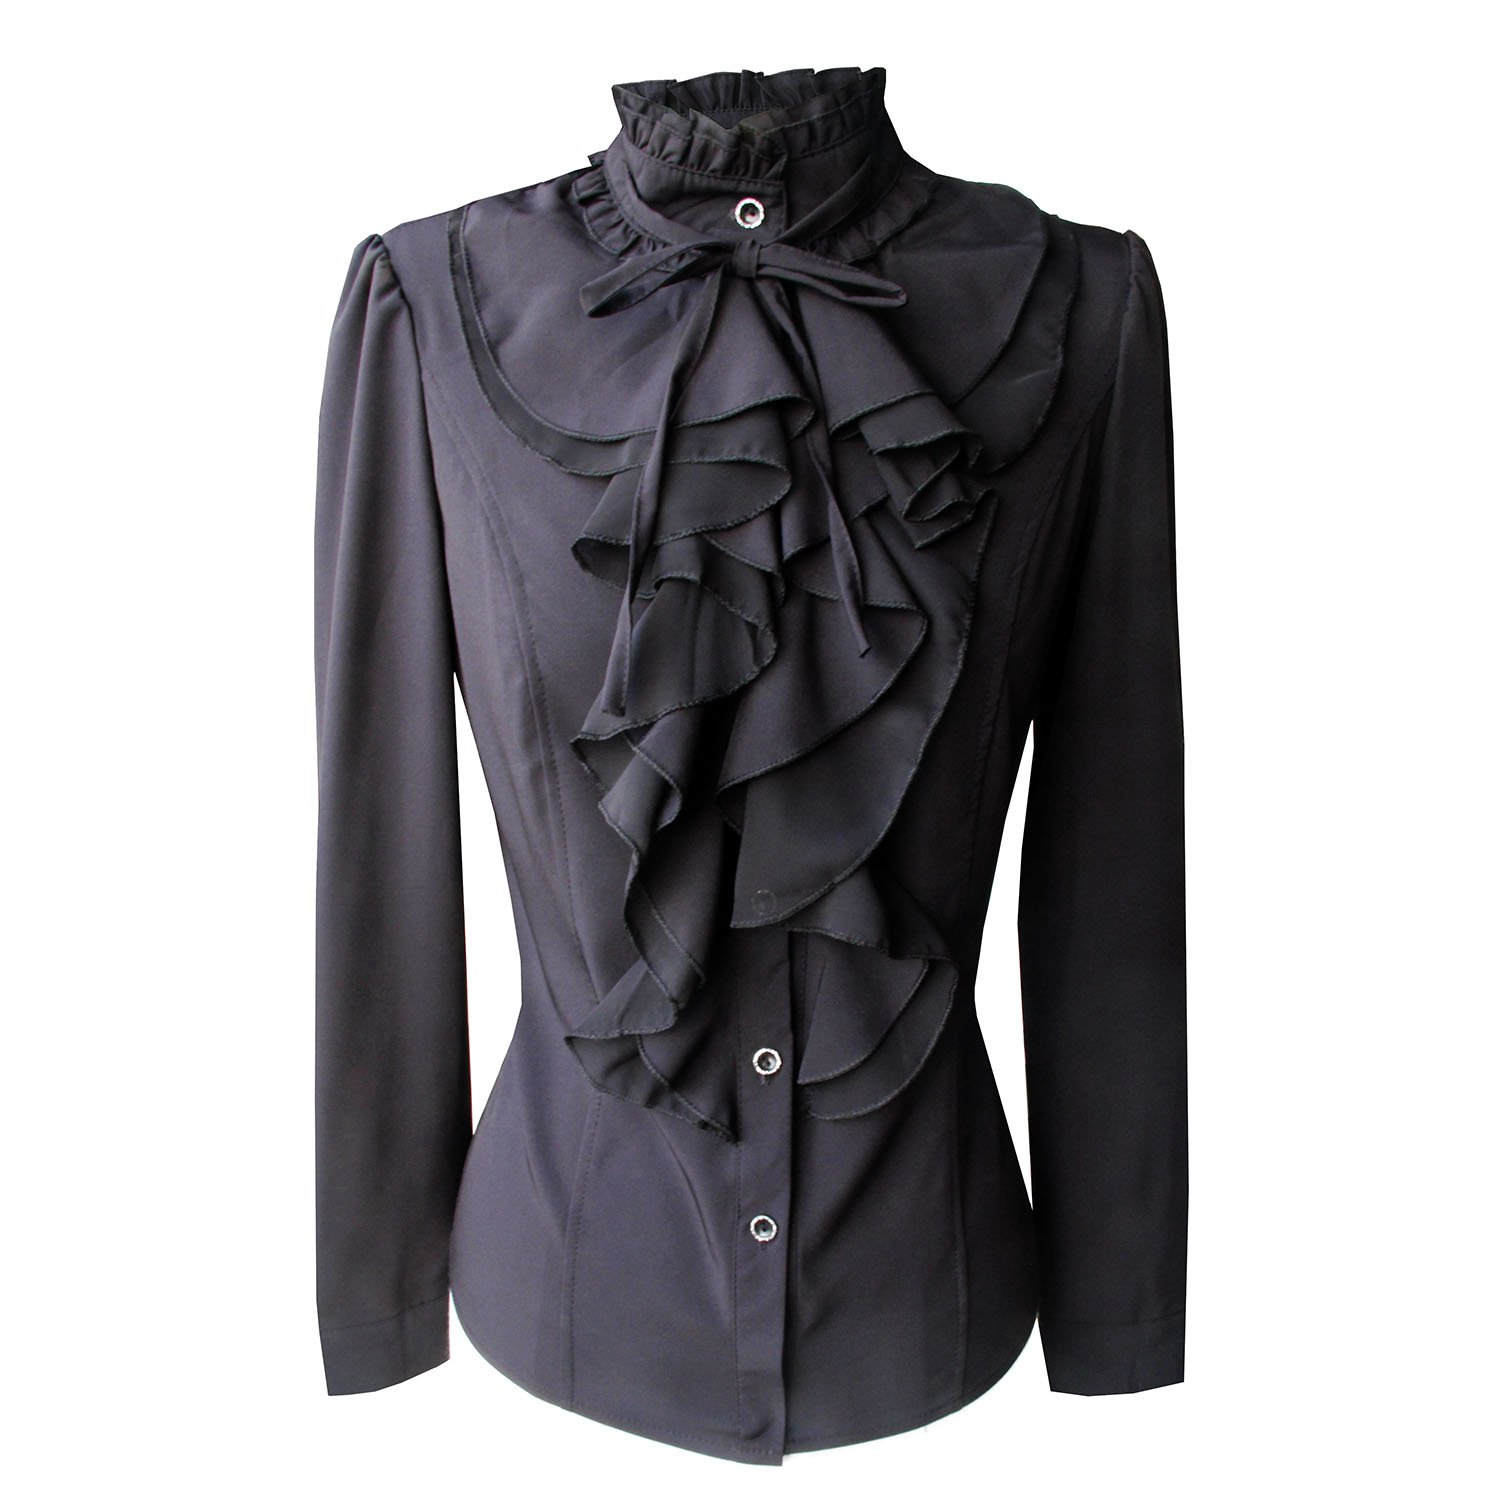 Y&Z Shirts For Women Stand-Up Collar Vintage Victoria Ruffle Long Sleeve BS02 (M, BS02-Black)